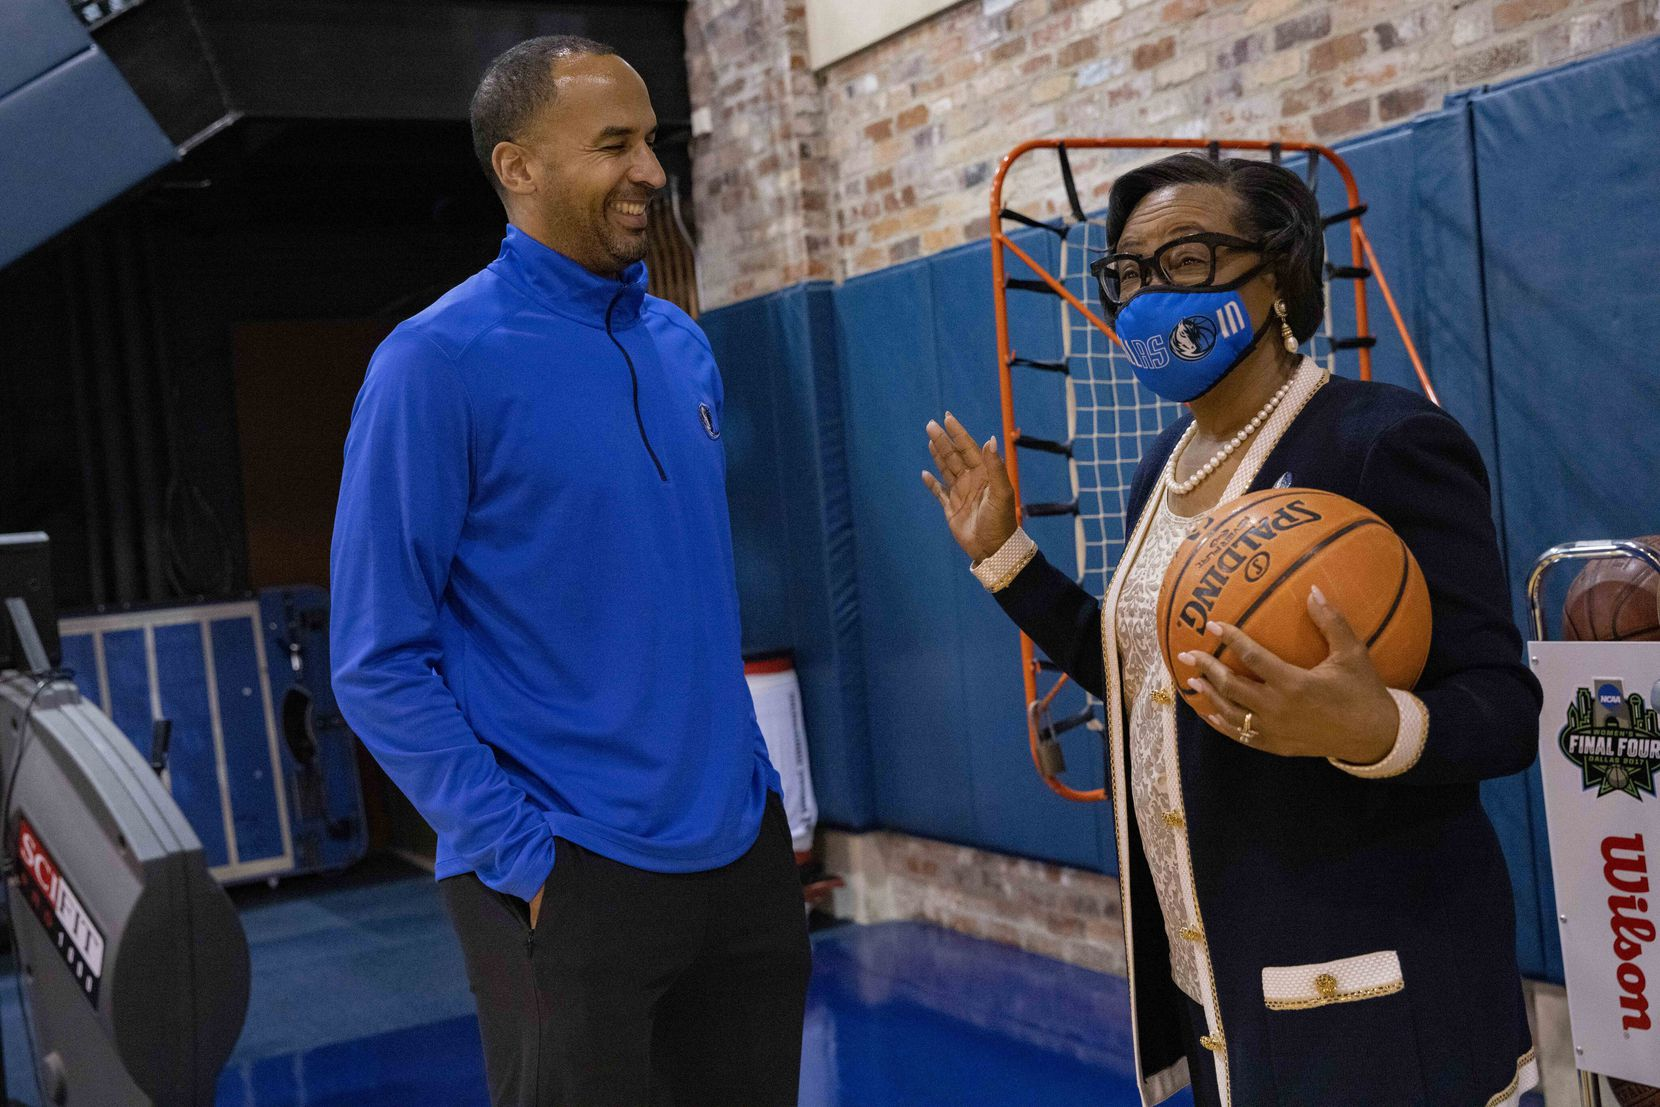 Dallas Mavericks GM Nico Harrison (left) chats with Mavericks CEO Cynt Marshall on Tuesday, Sept. 21, 2021, at American Airlines Center in Dallas. (Juan Figueroa/The Dallas Morning News)